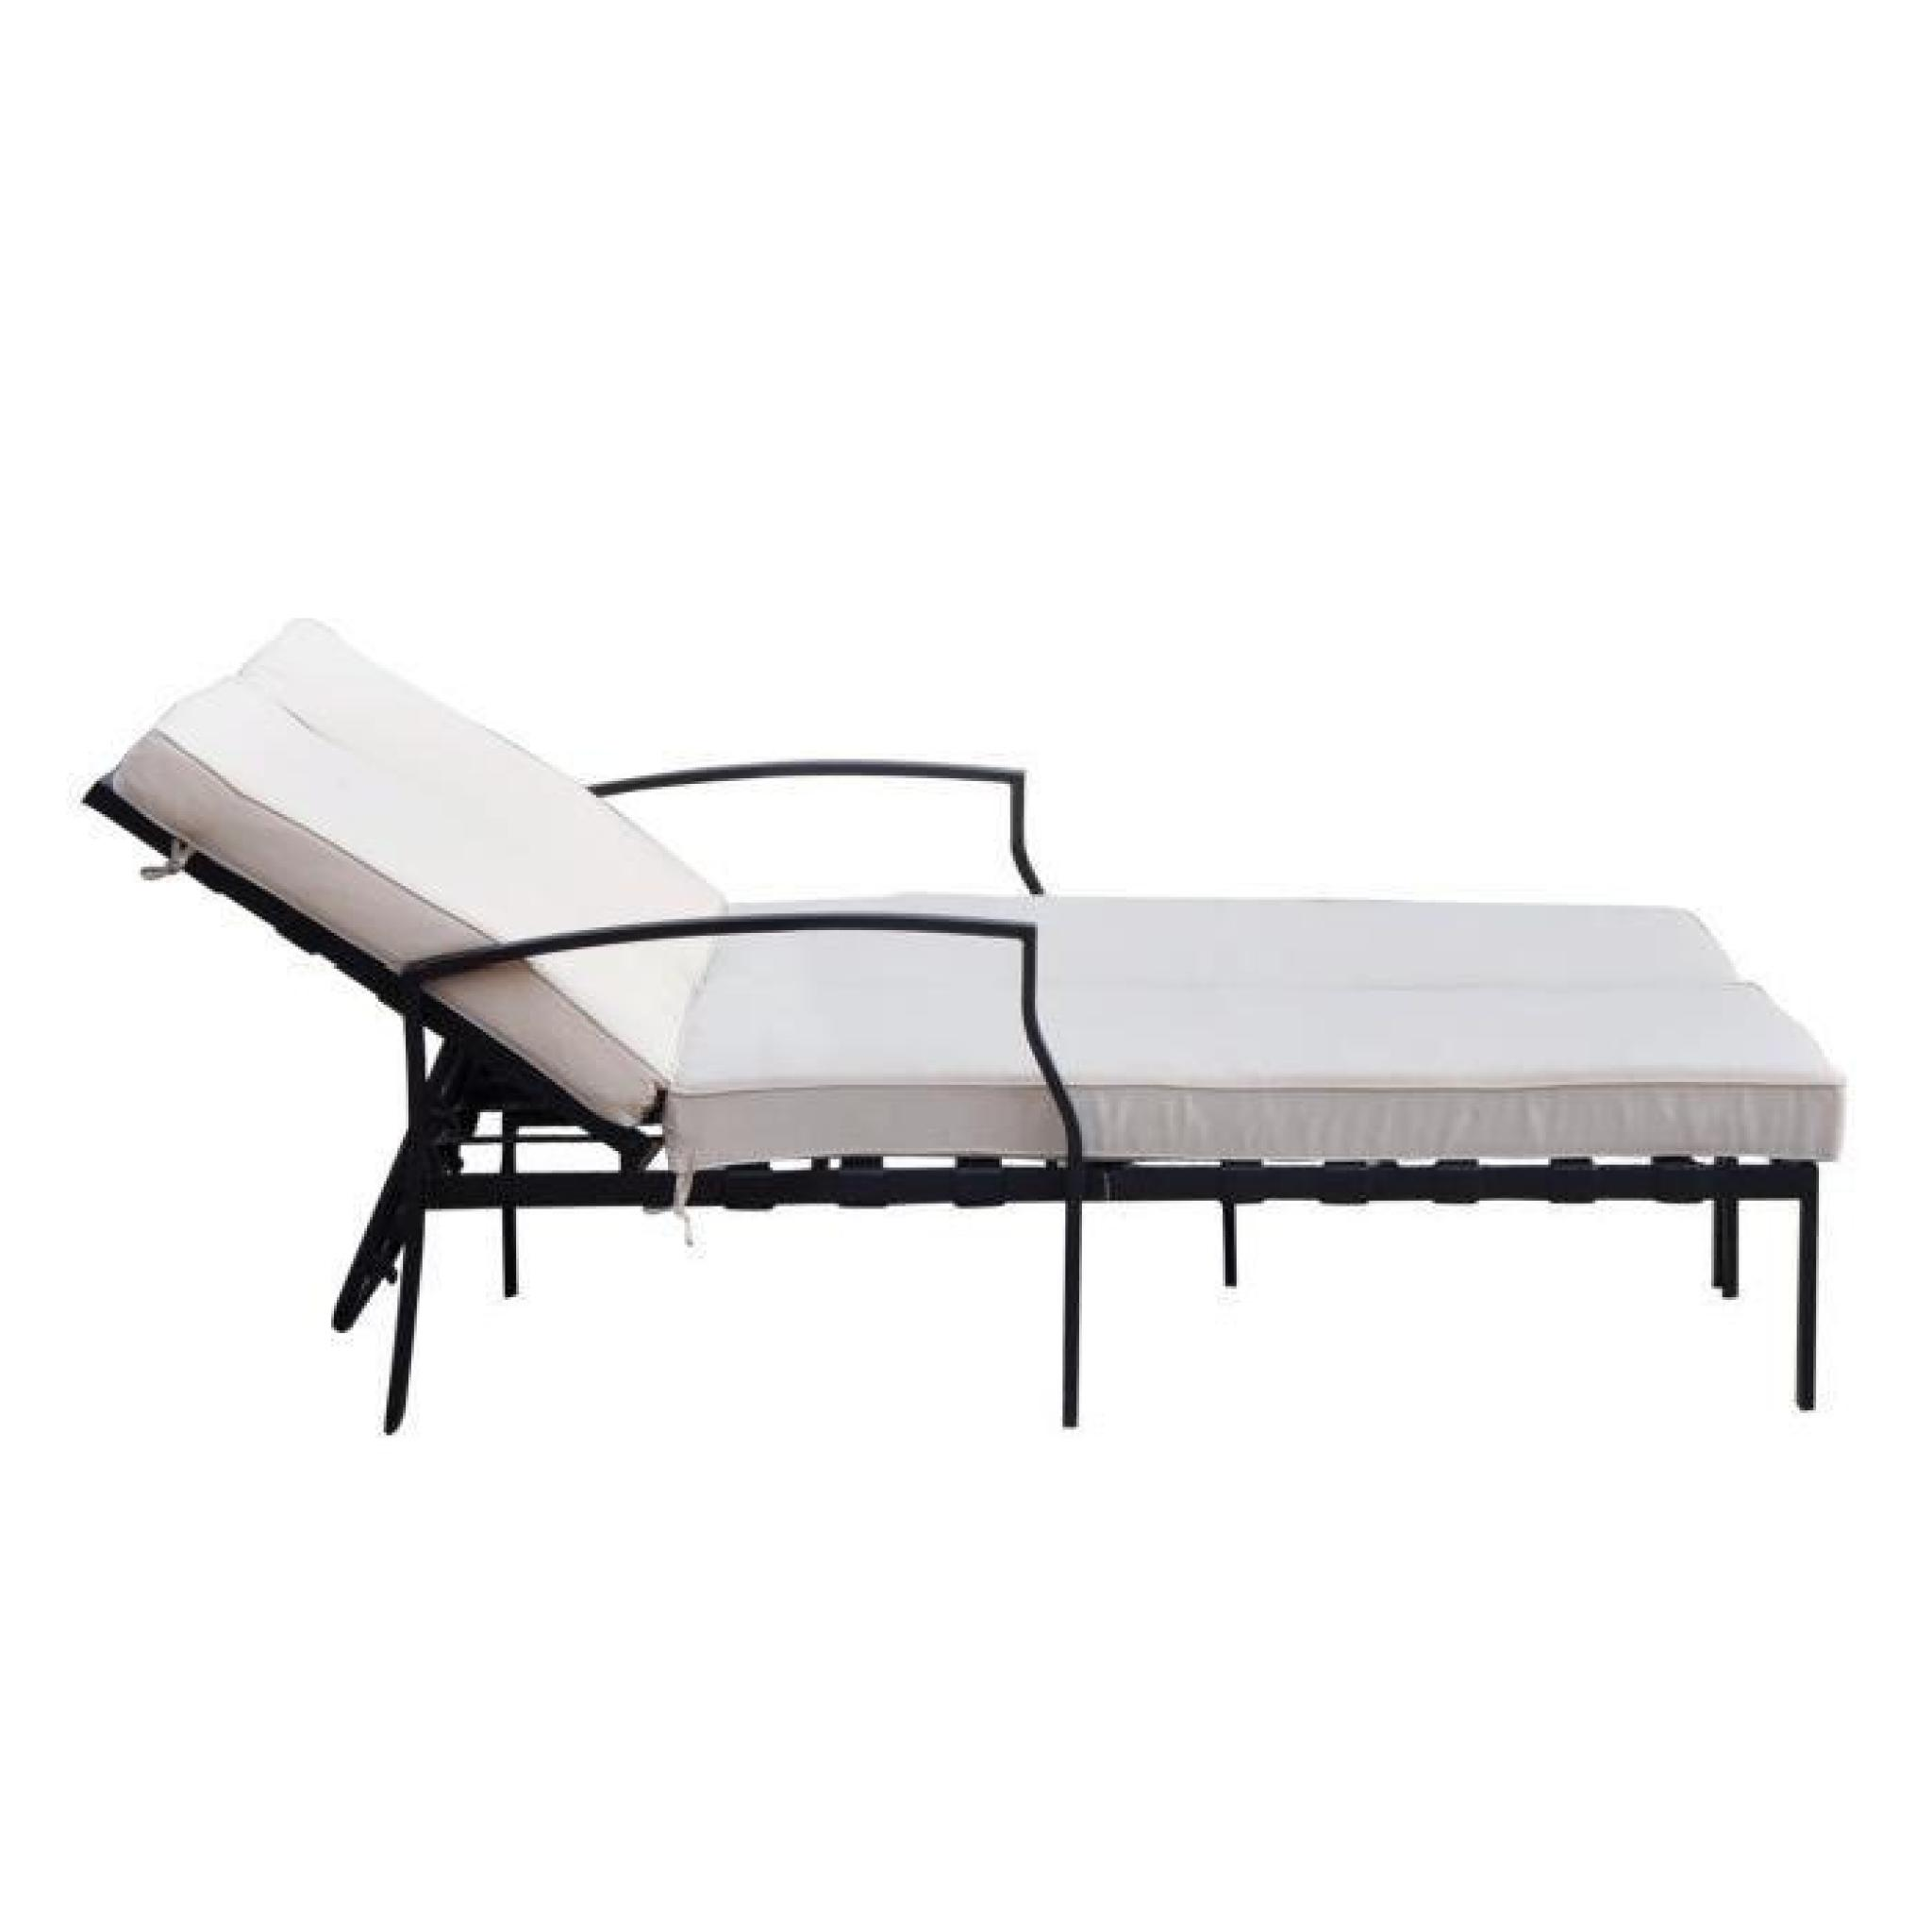 lit bain de soleil awesome lidl promotion chaise longue. Black Bedroom Furniture Sets. Home Design Ideas